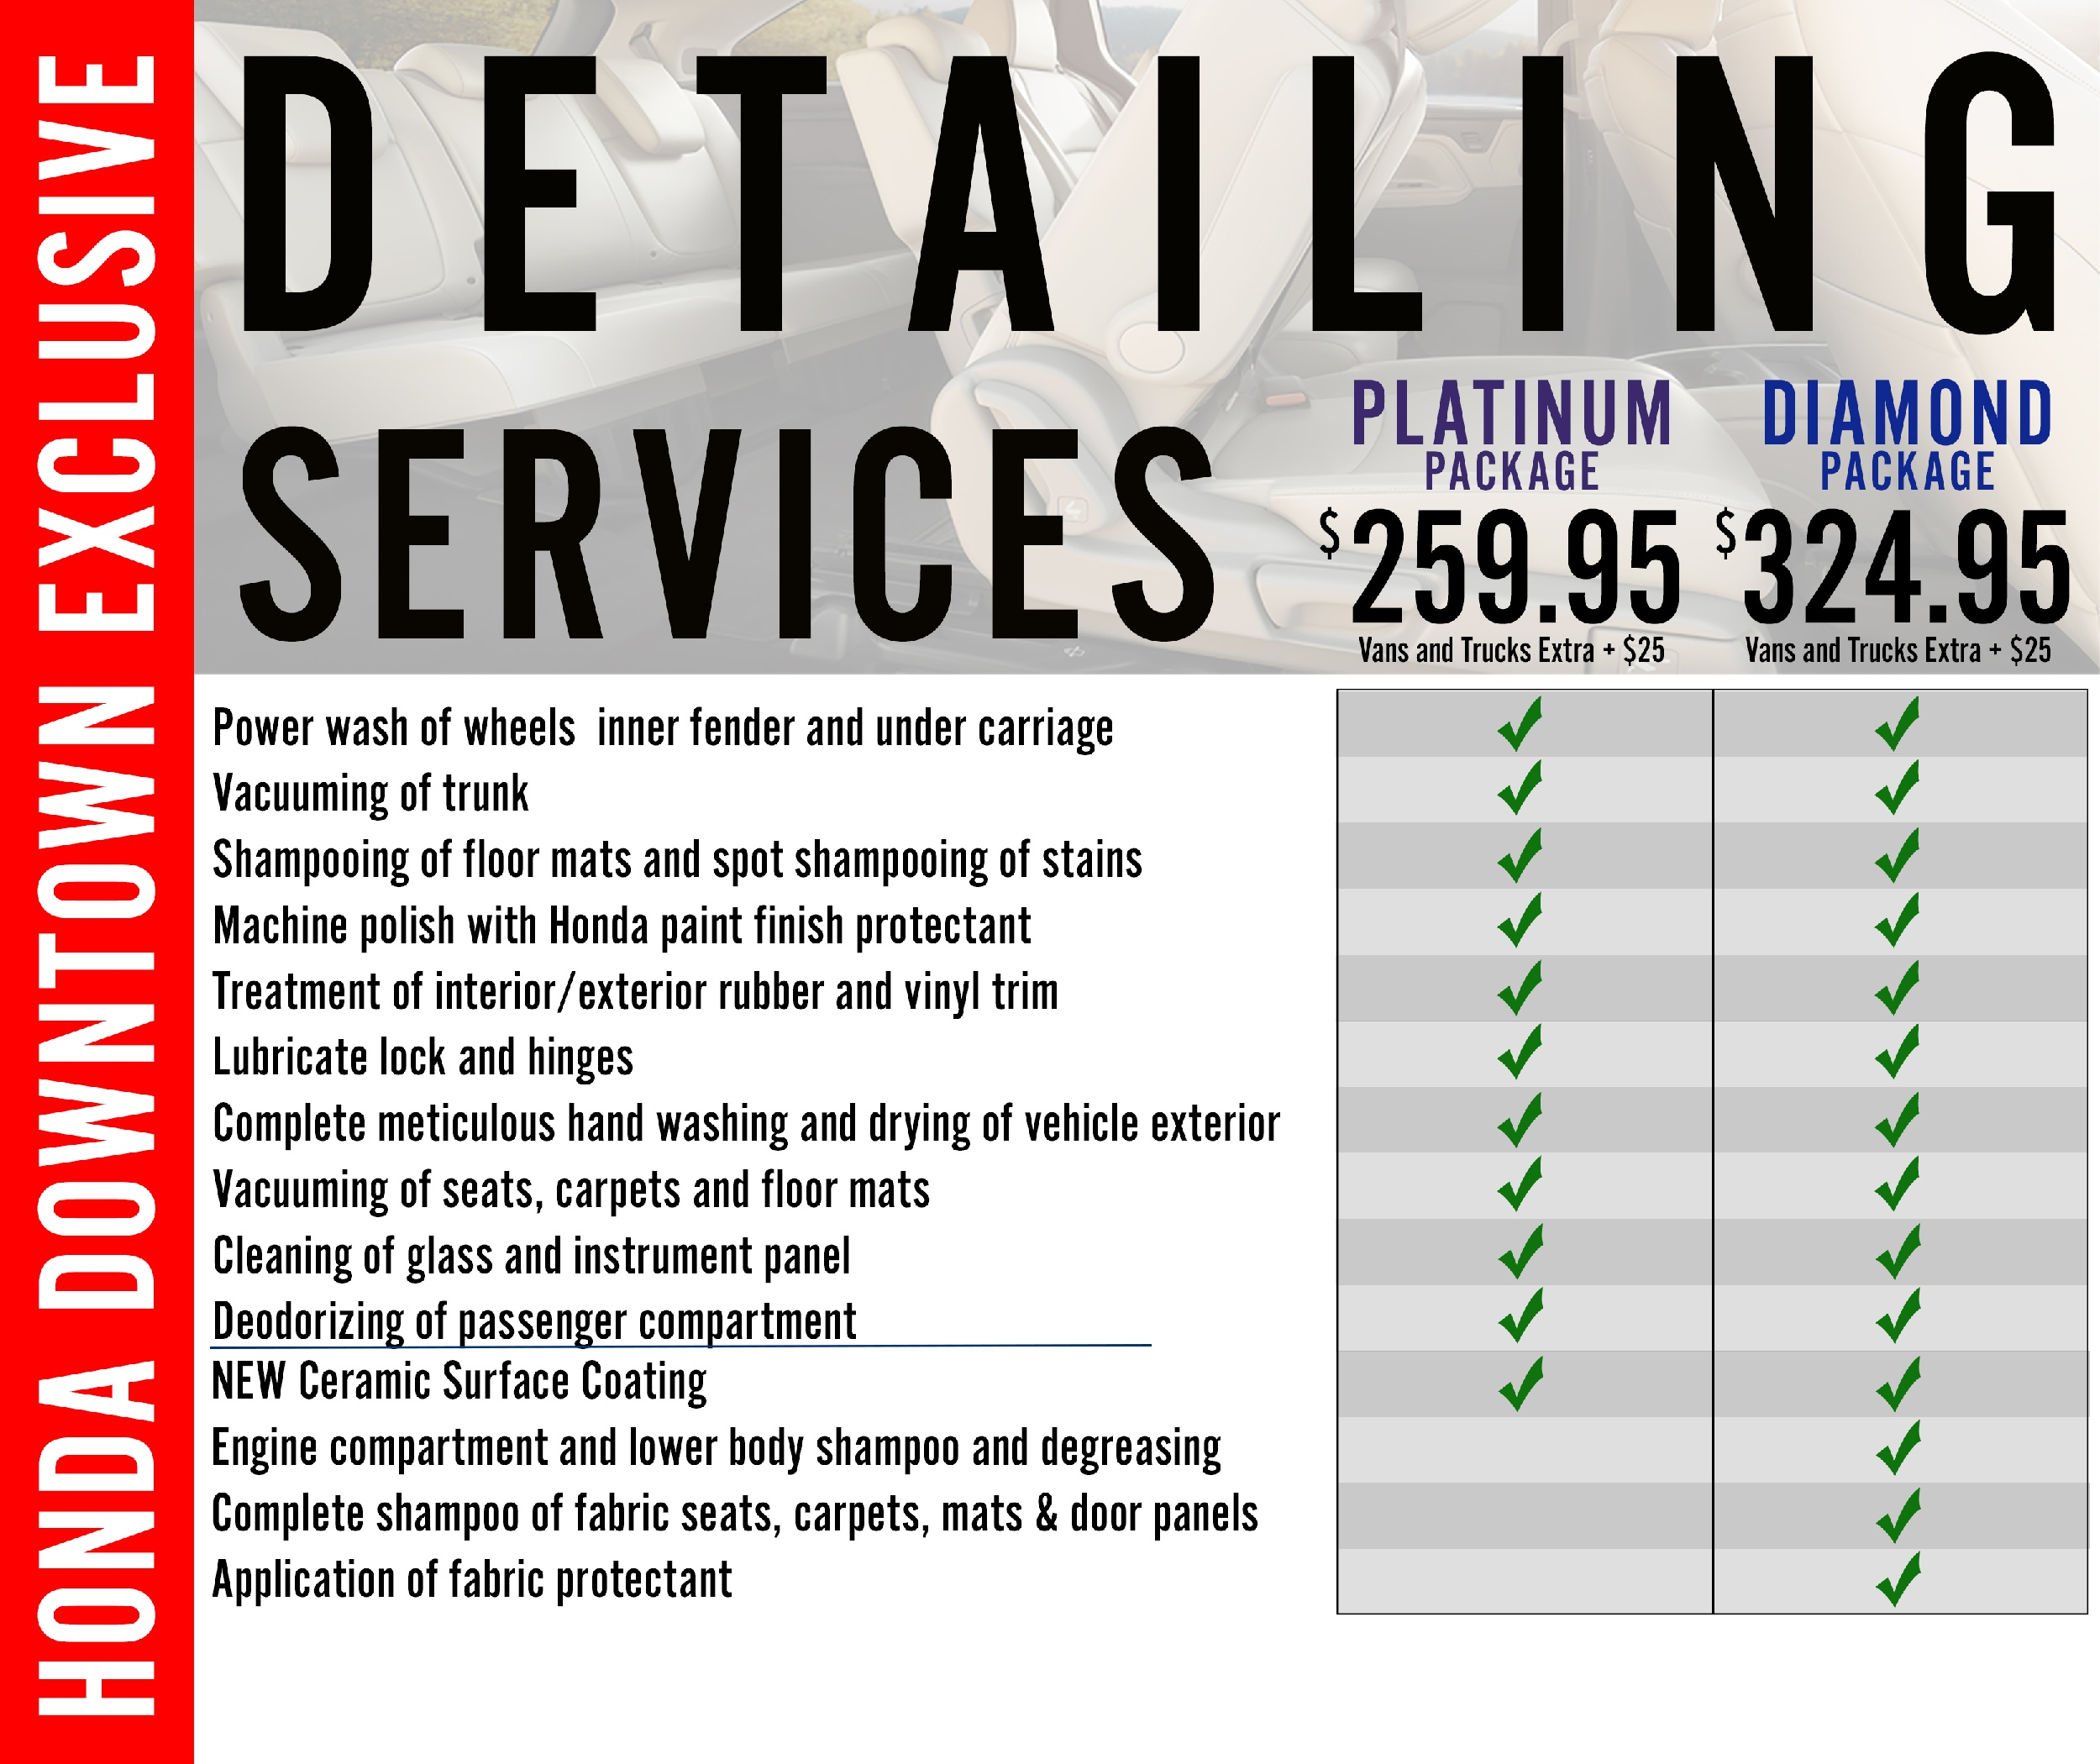 Full Detailing Packages